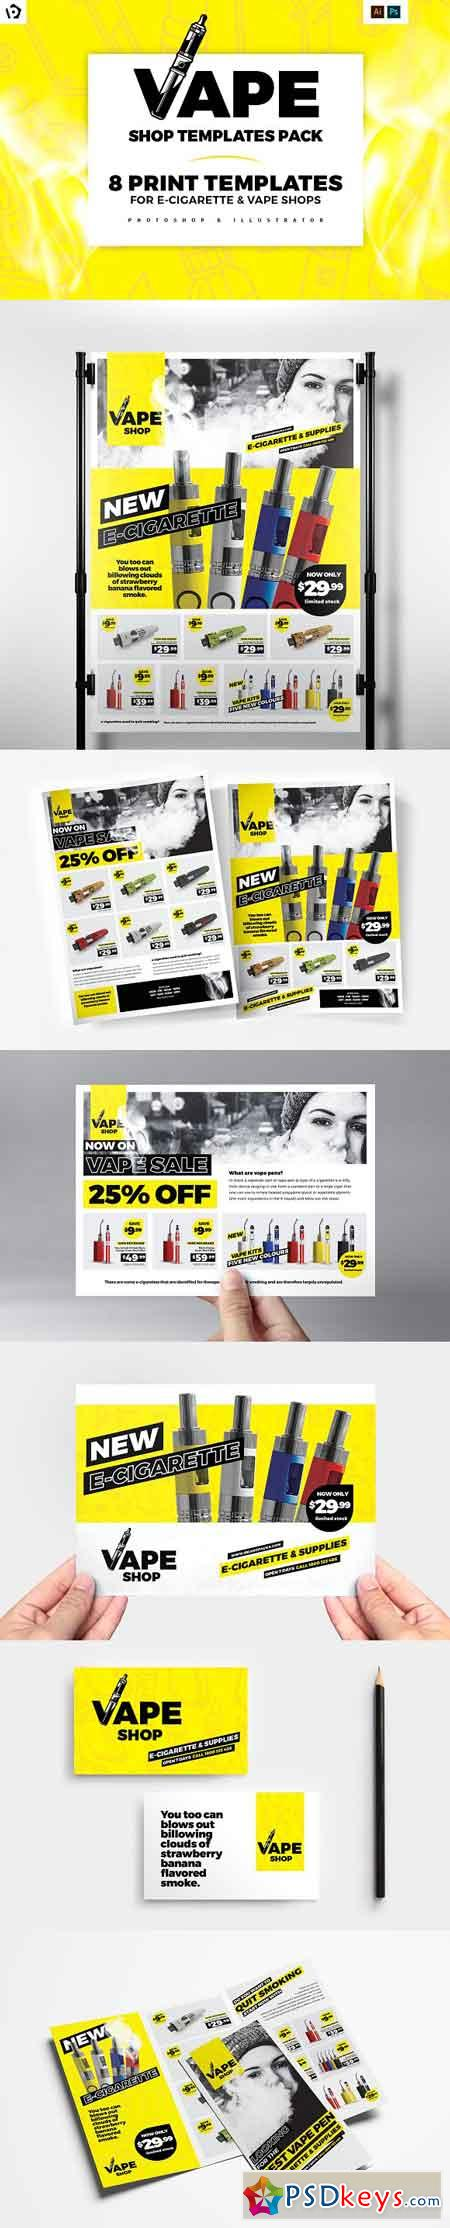 Vape Shop Templates Pack 3016031